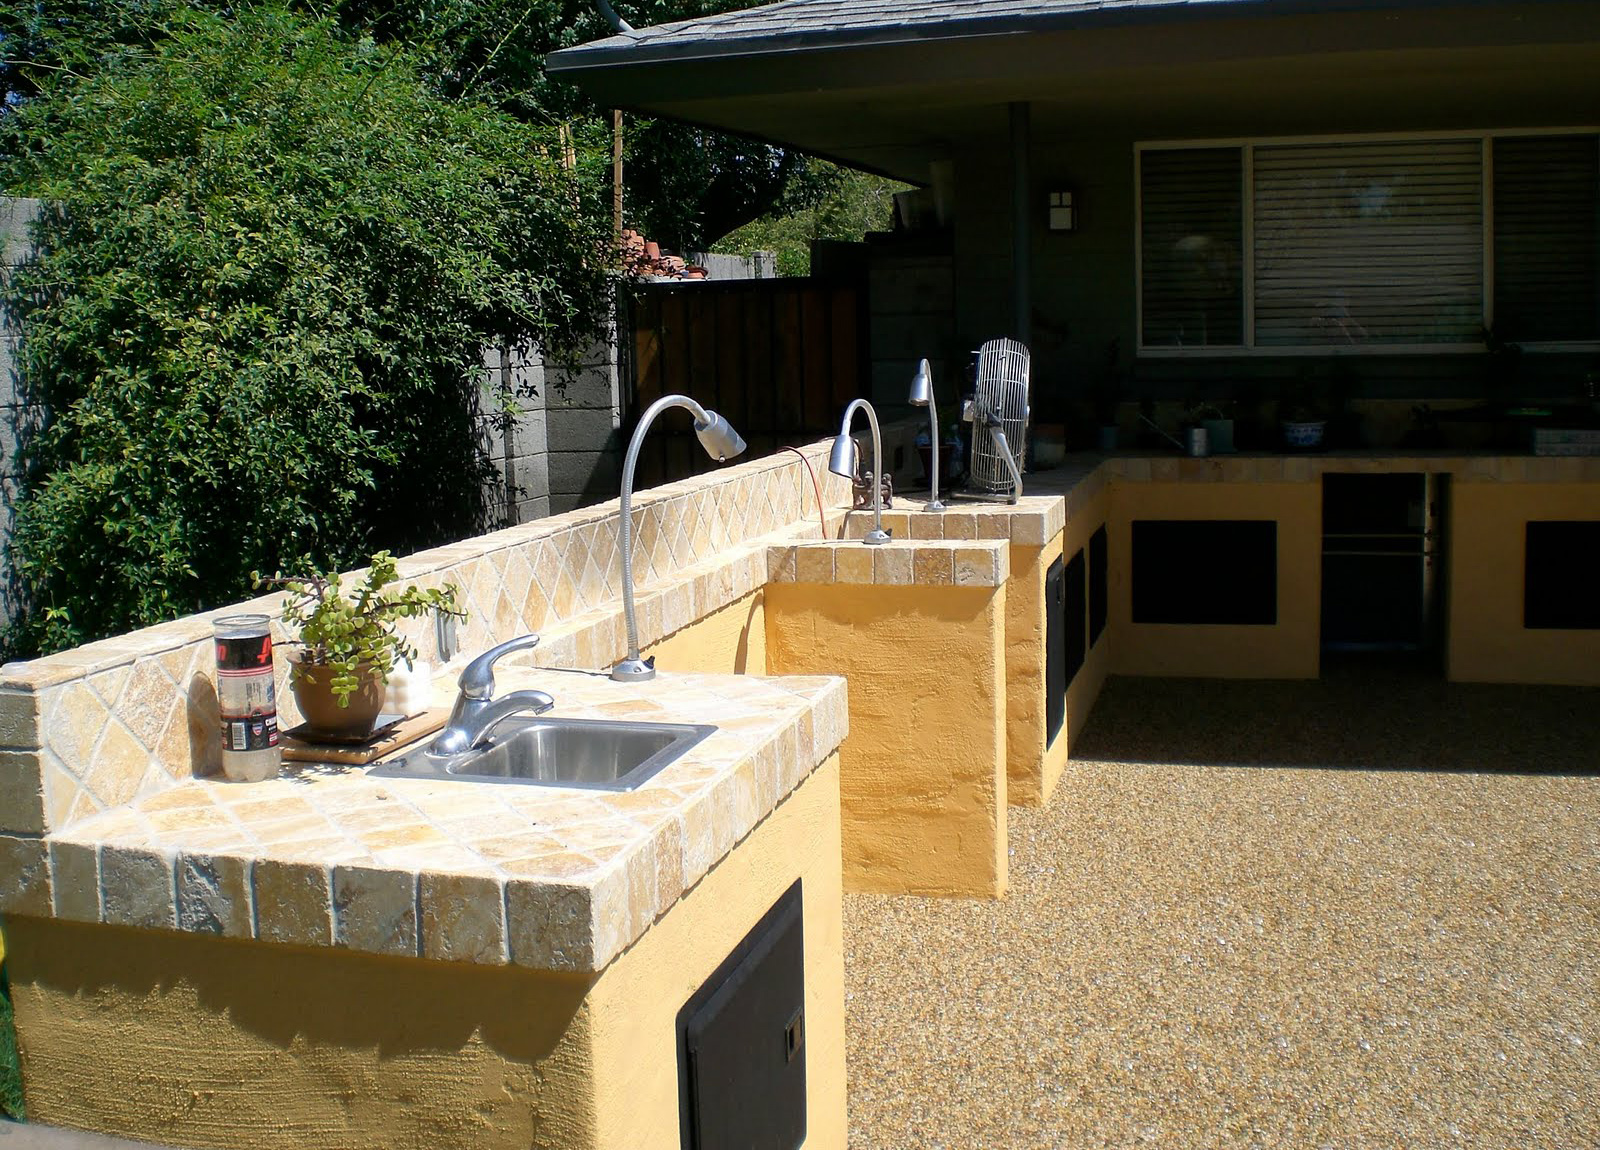 Waterproof Countertop Materials : Best Outdoor Countertop Material